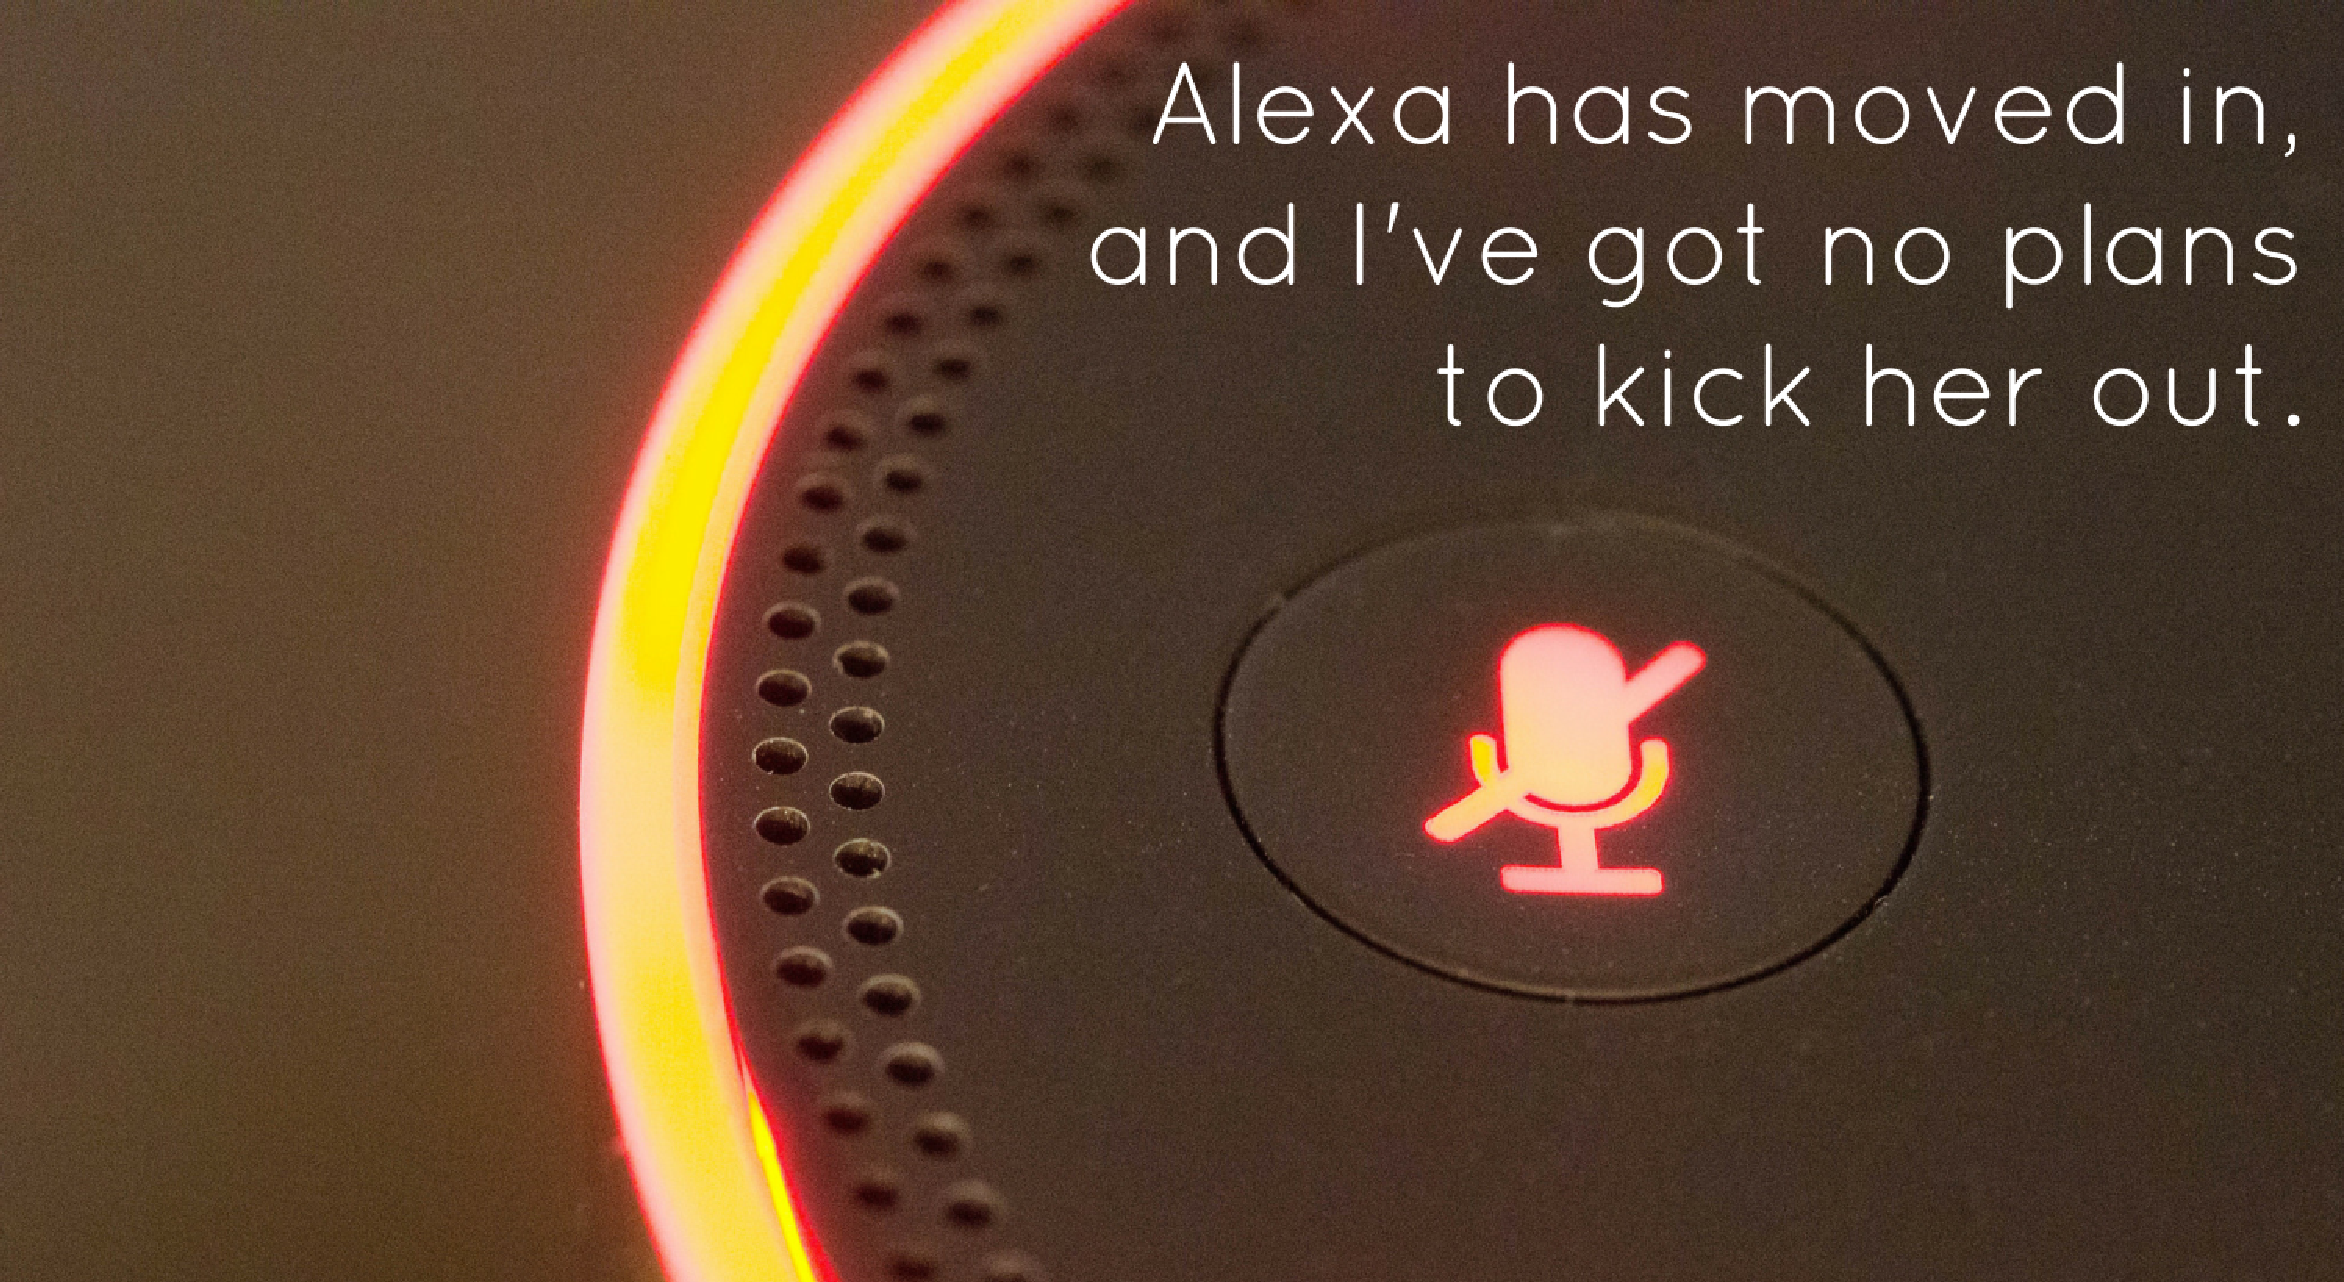 Alexa has moved in - Original Image @ https://flic.kr/p/C6Ae3S